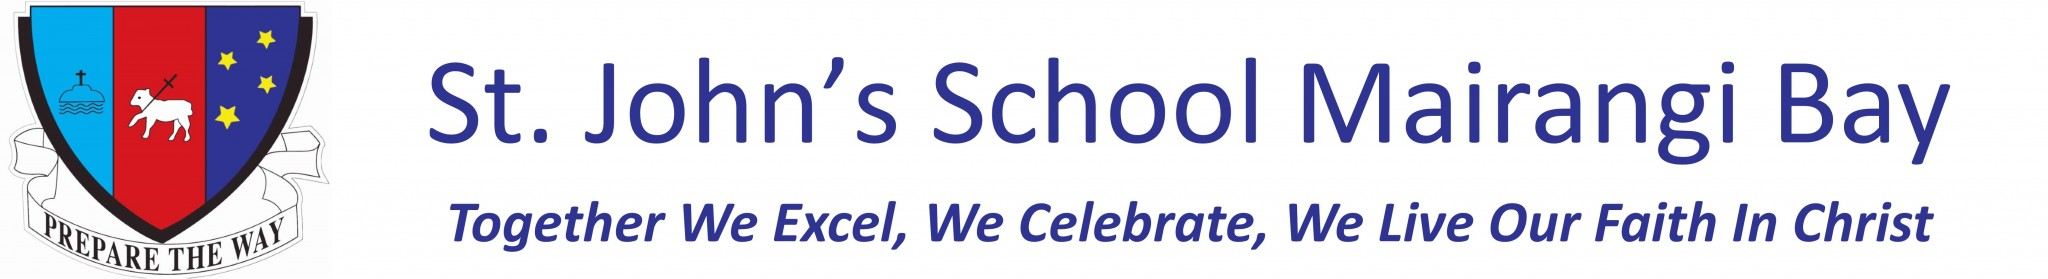 St Johns School Mairangi Bay Logo